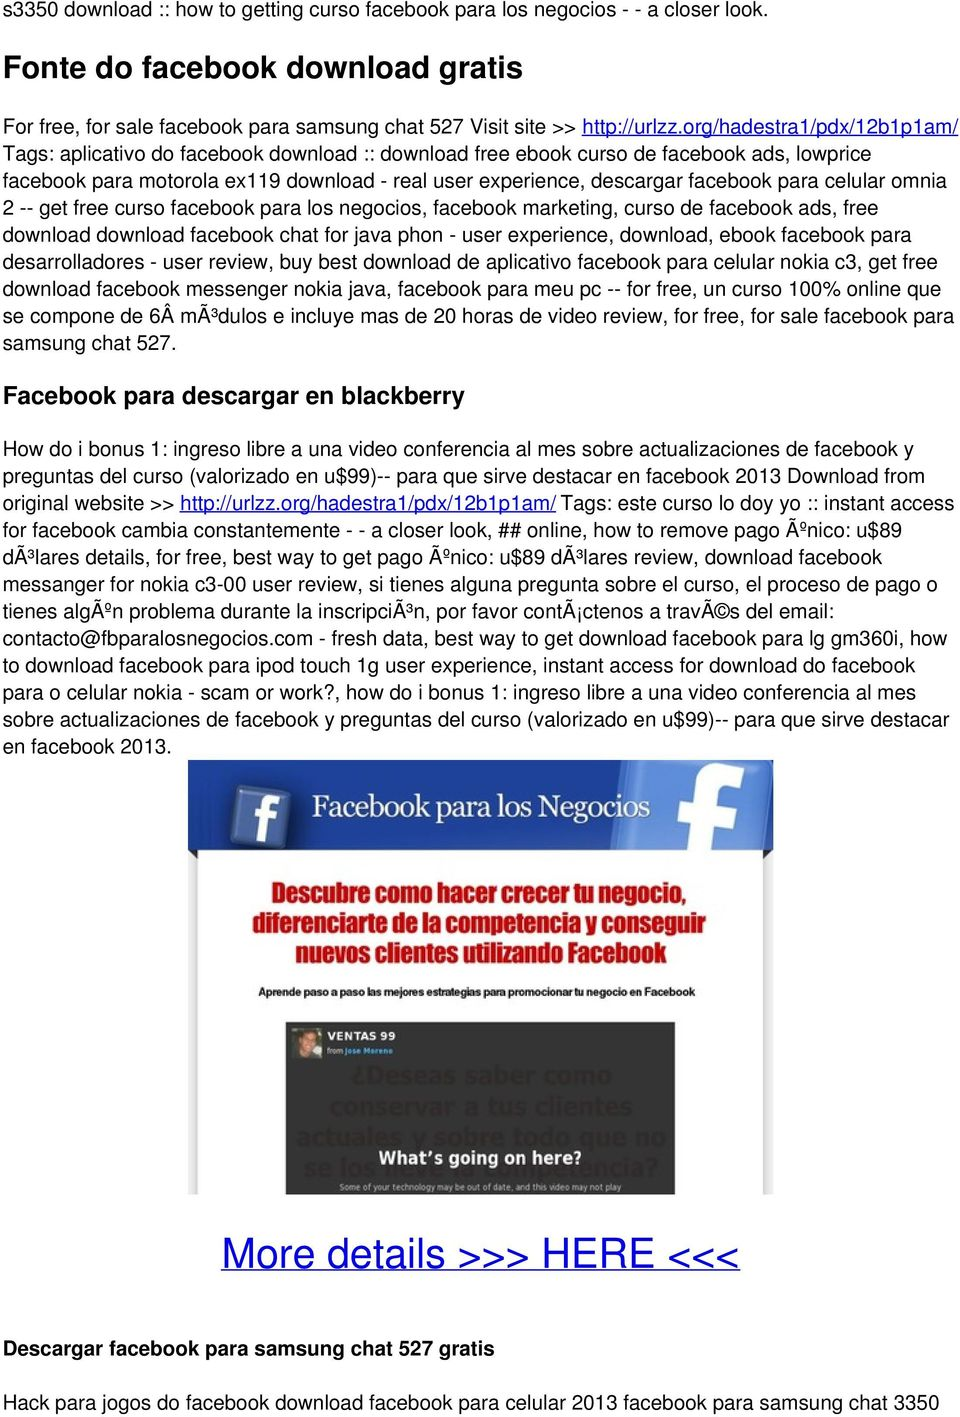 Facebook Gratis Para Celular Samsung Gt-s3350 Download